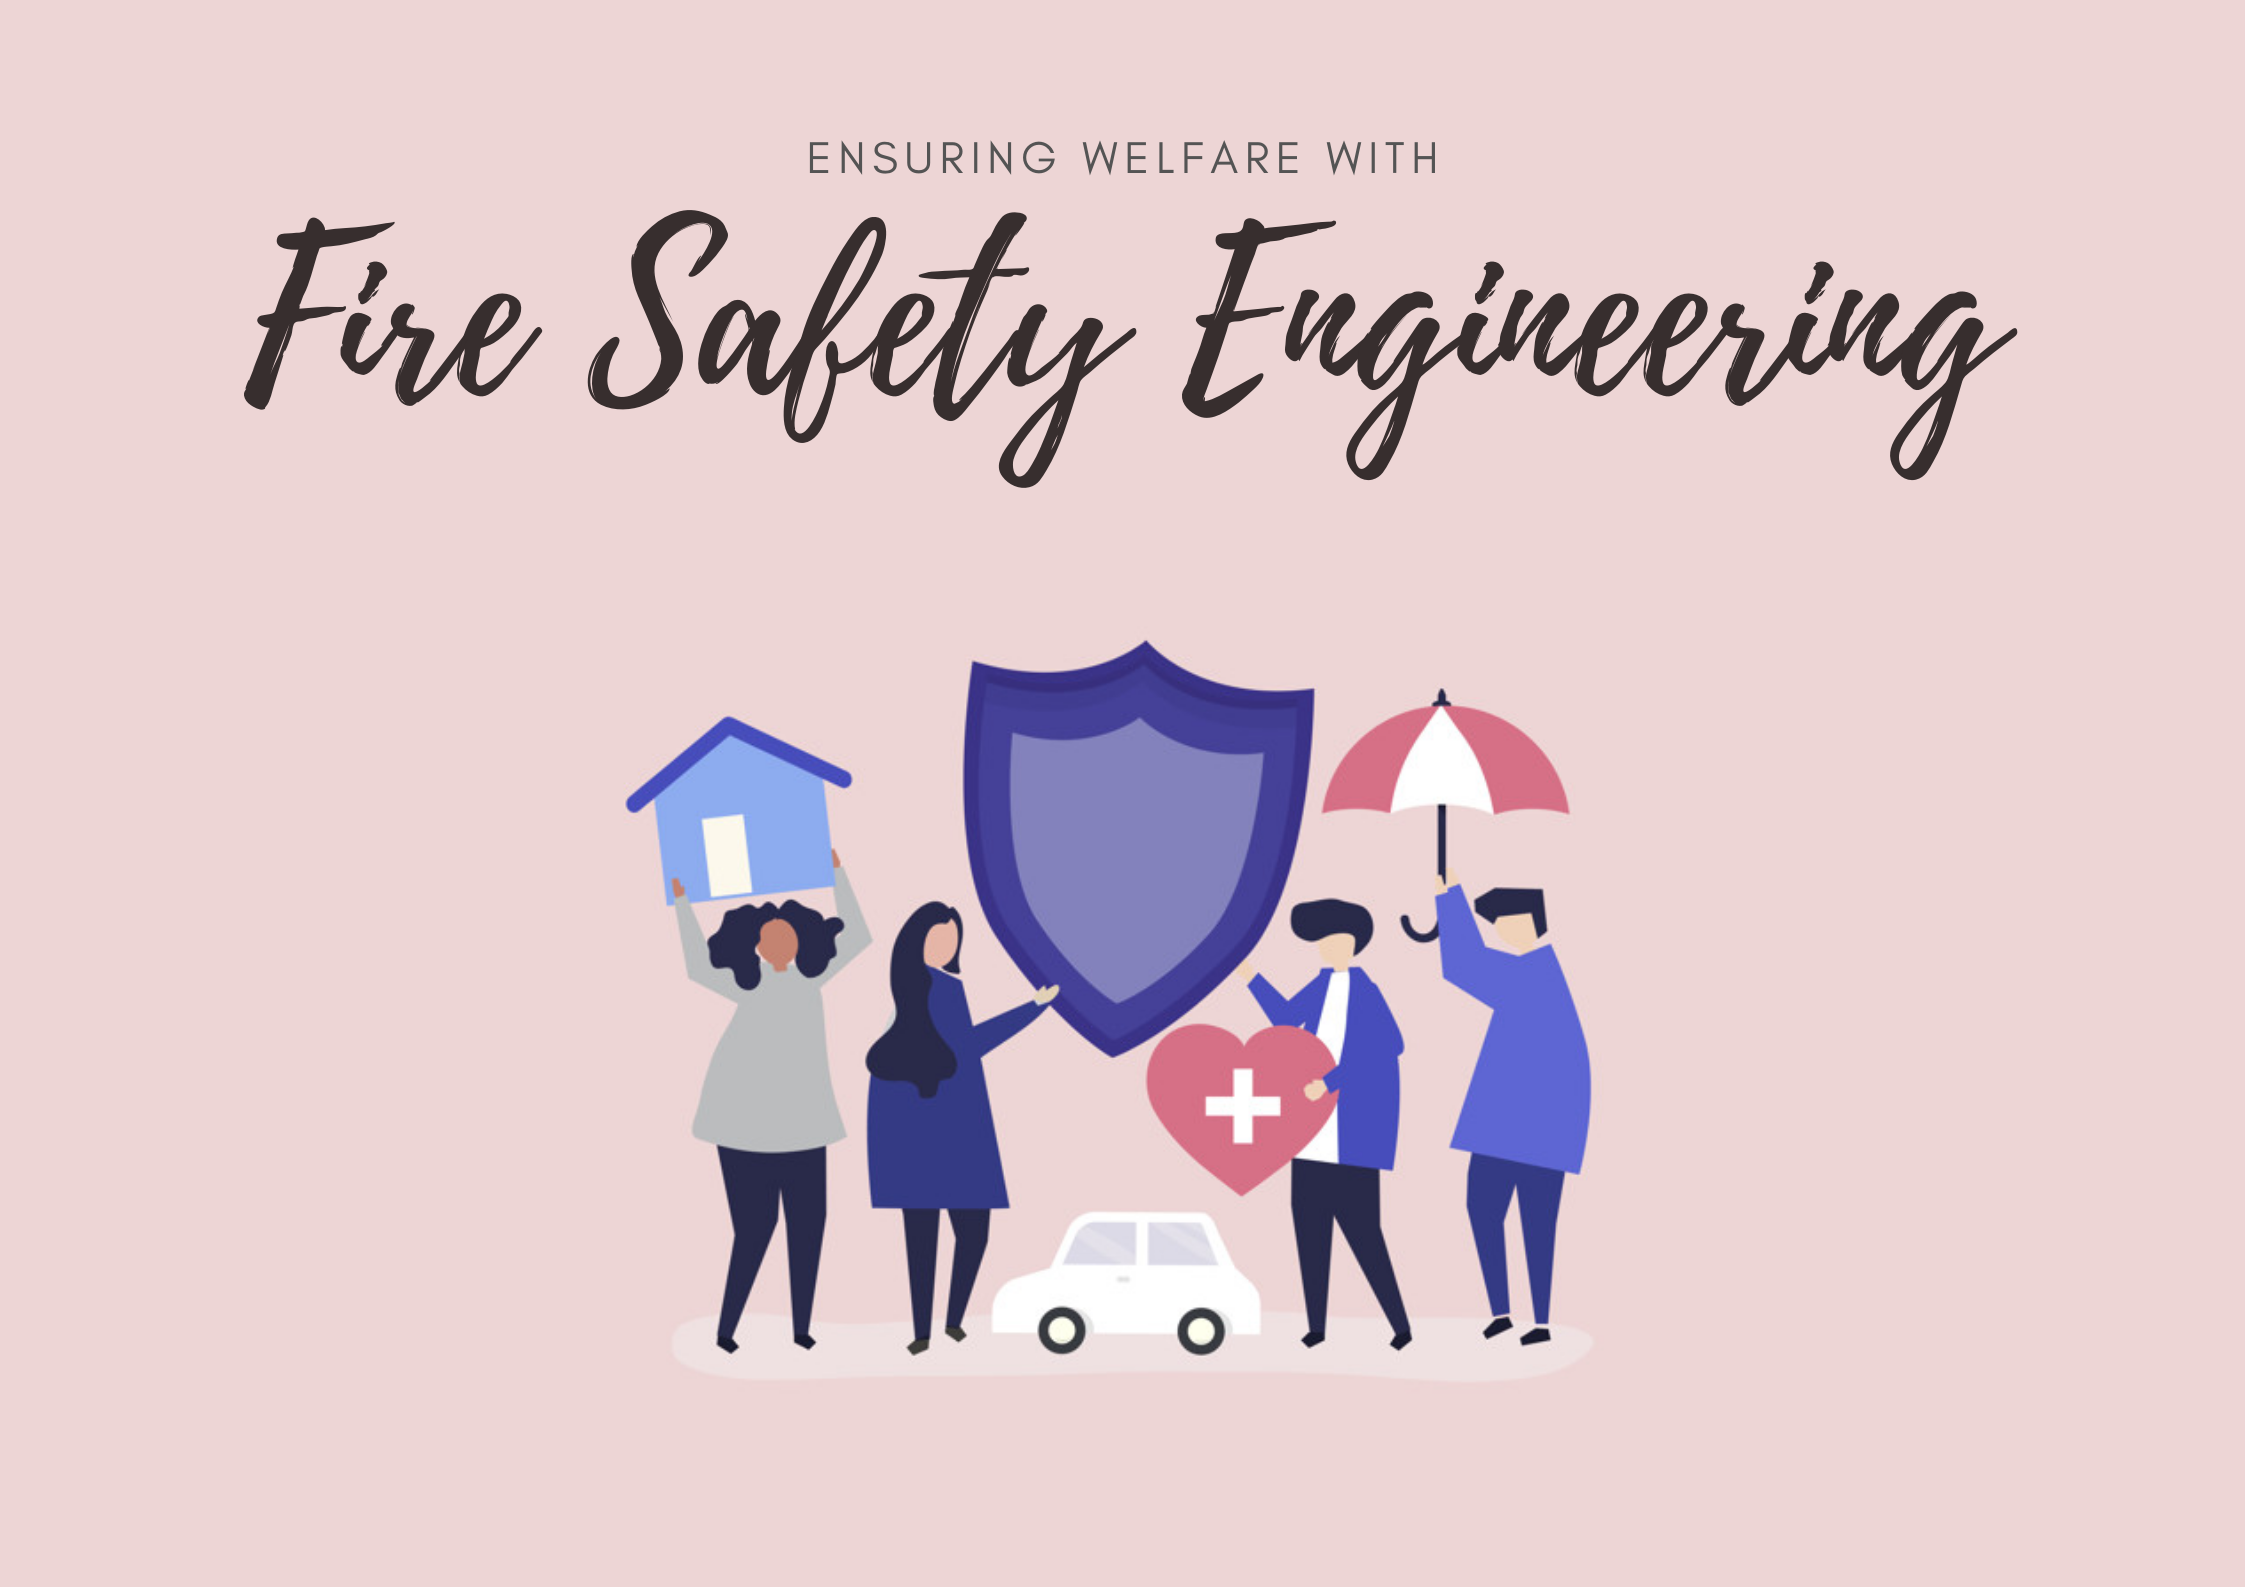 Ensuring-Welfare-with-Fire-Safety-Engineering